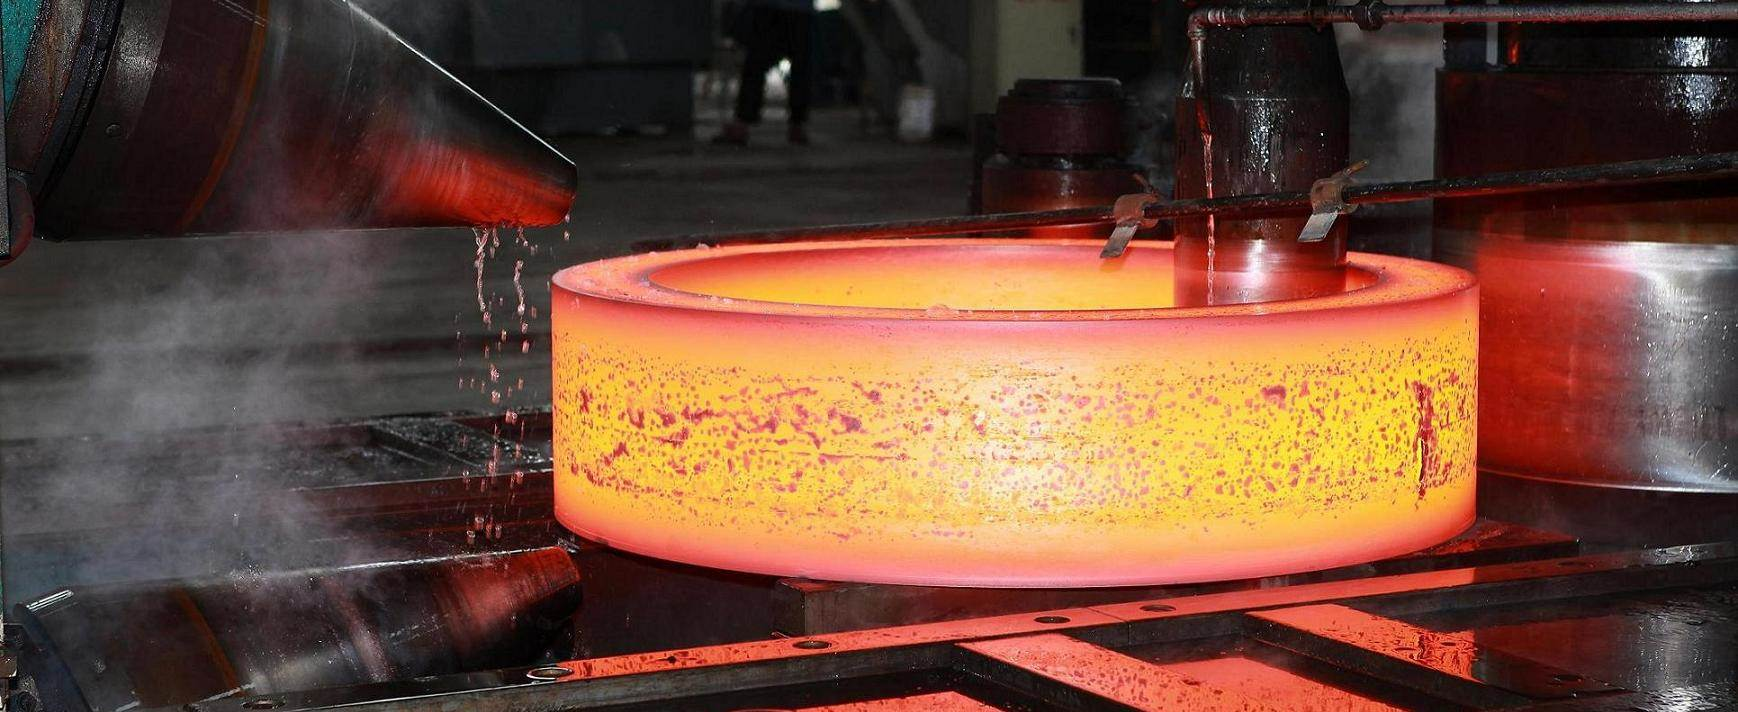 rolling-ring-forging-stainless-steel-flange